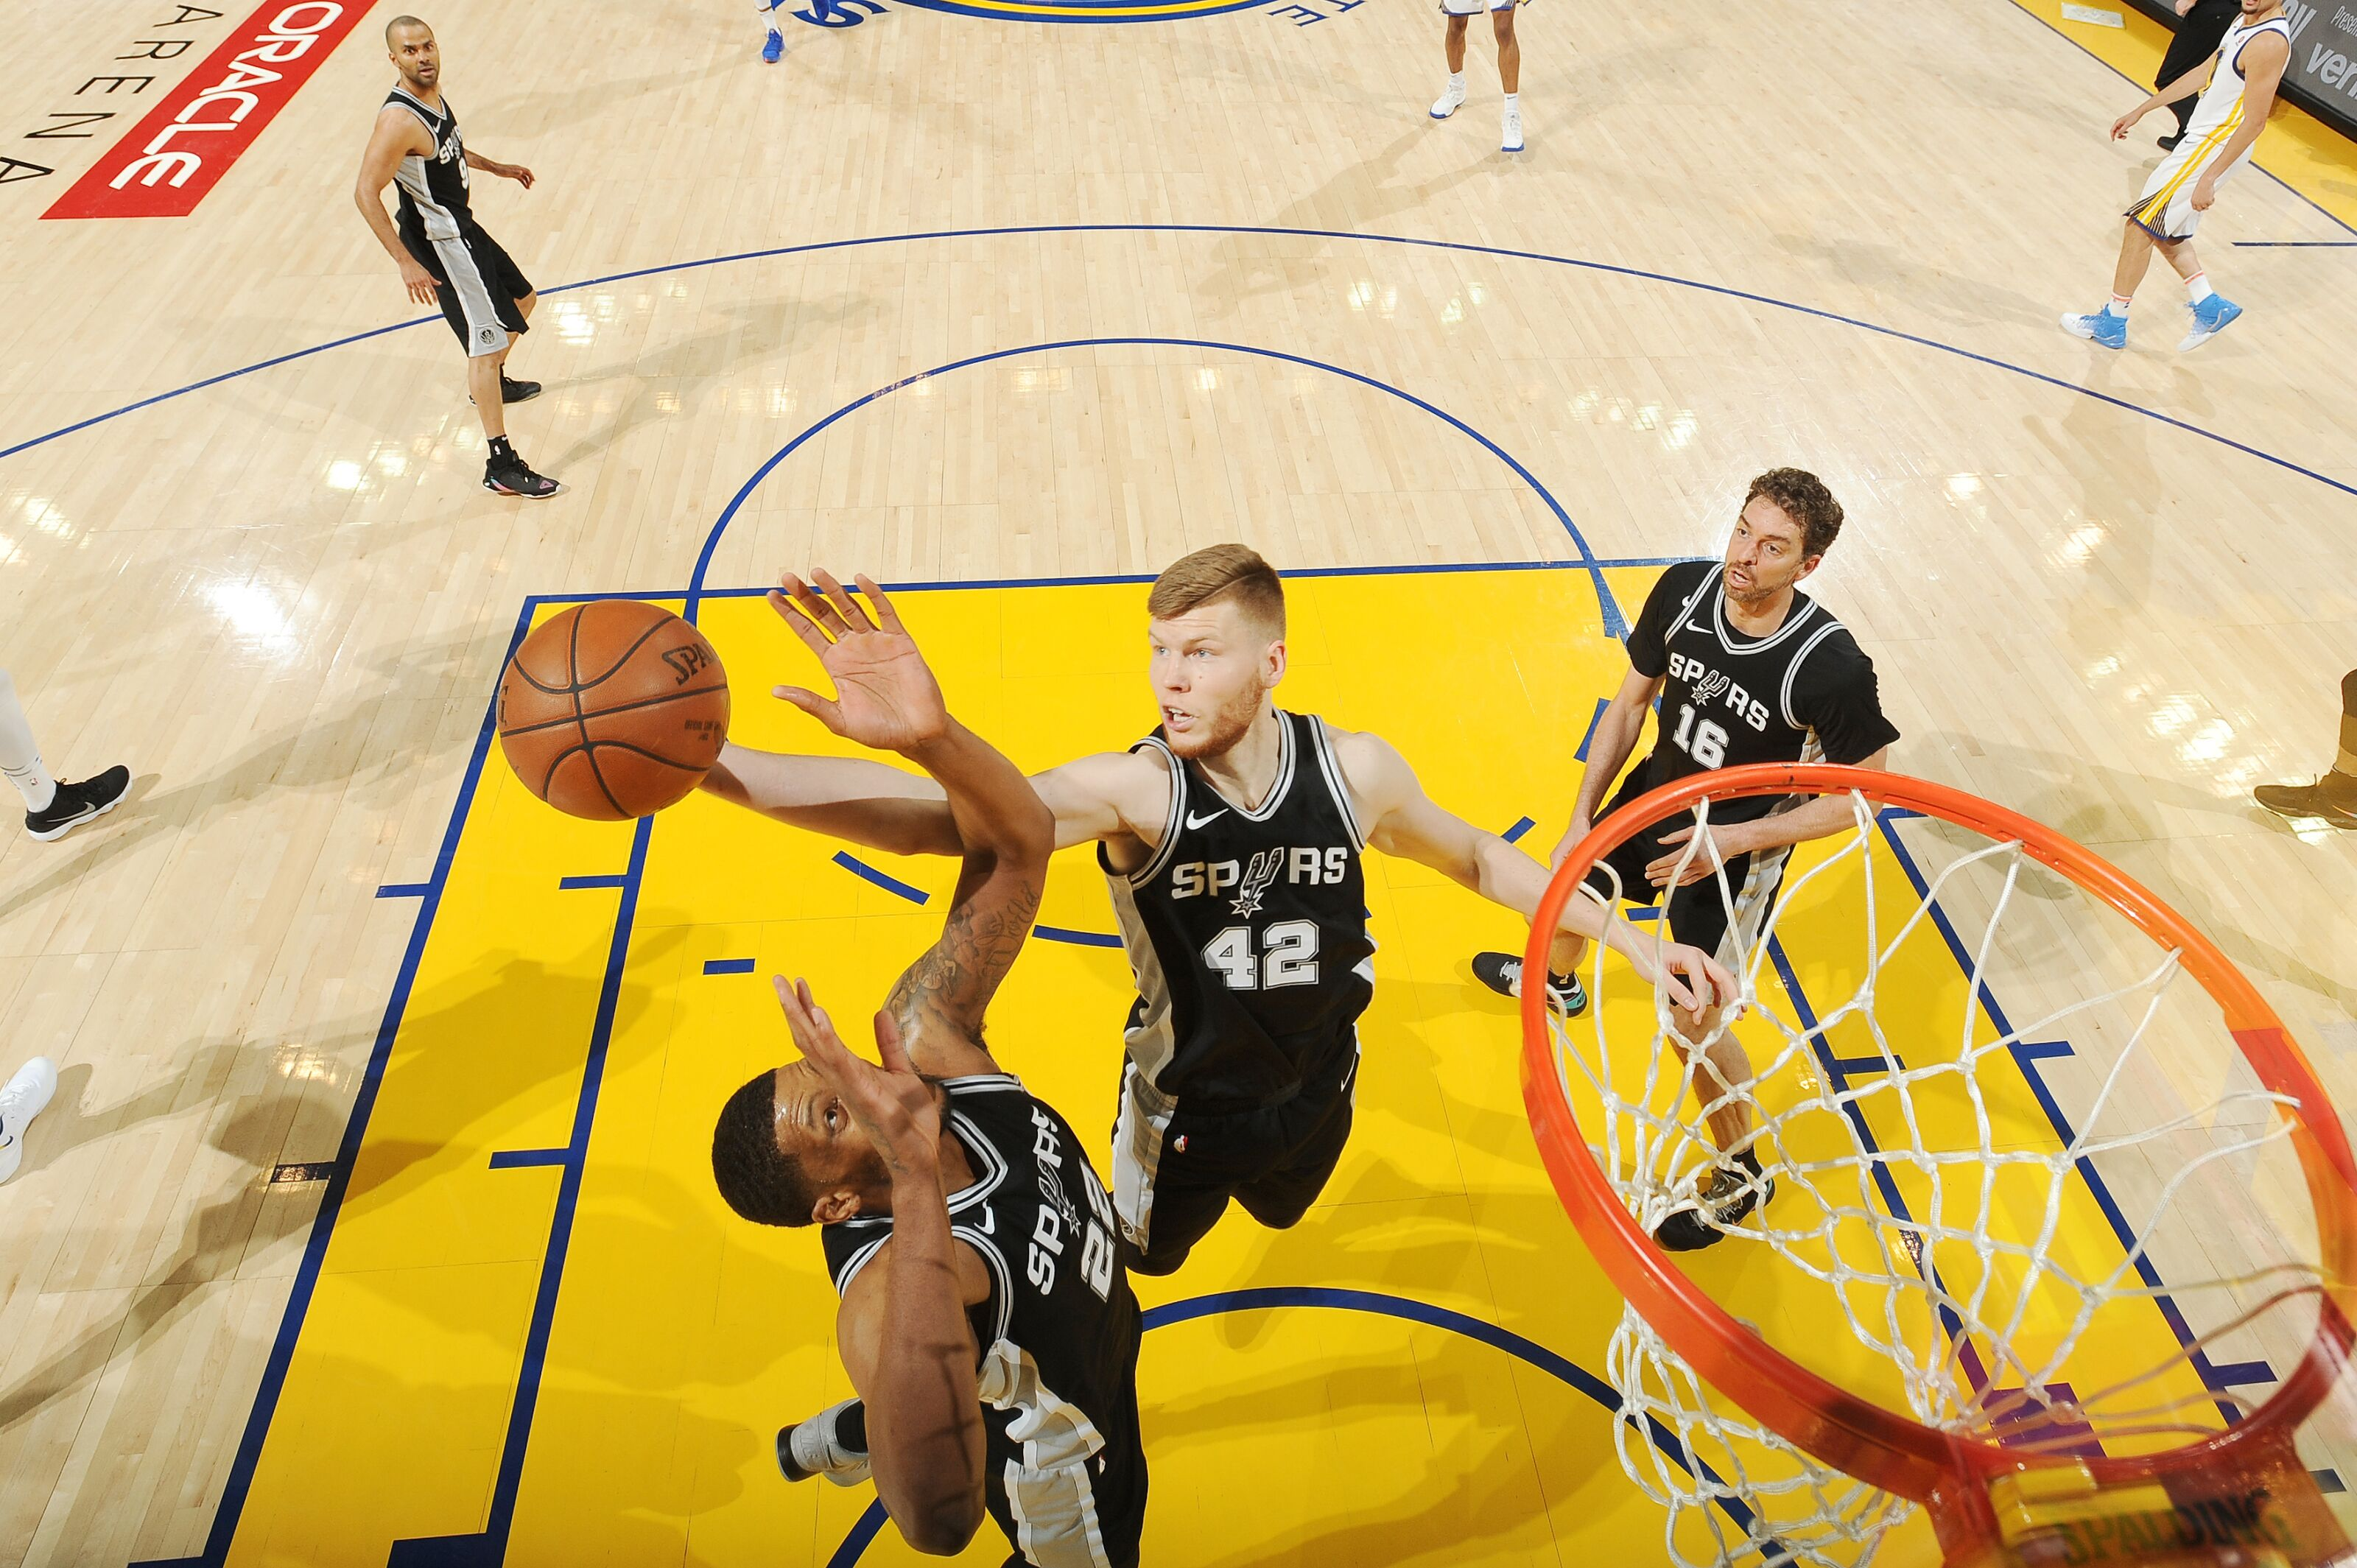 OAKLAND, CA - APRIL 14: Davis Bertans #42 of the San Antonio Spurs grabs the rebound against the Golden State Warriors in Game One of Round One of the 2018 NBA Playoffs on April 14, 2018 at ORACLE Arena in Oakland, California. NOTE TO USER: User expressly acknowledges and agrees that, by downloading and or using this photograph, user is consenting to the terms and conditions of Getty Images License Agreement. Mandatory Copyright Notice: Copyright 2018 NBAE (Photo by Noah Graham/NBAE via Getty Images)